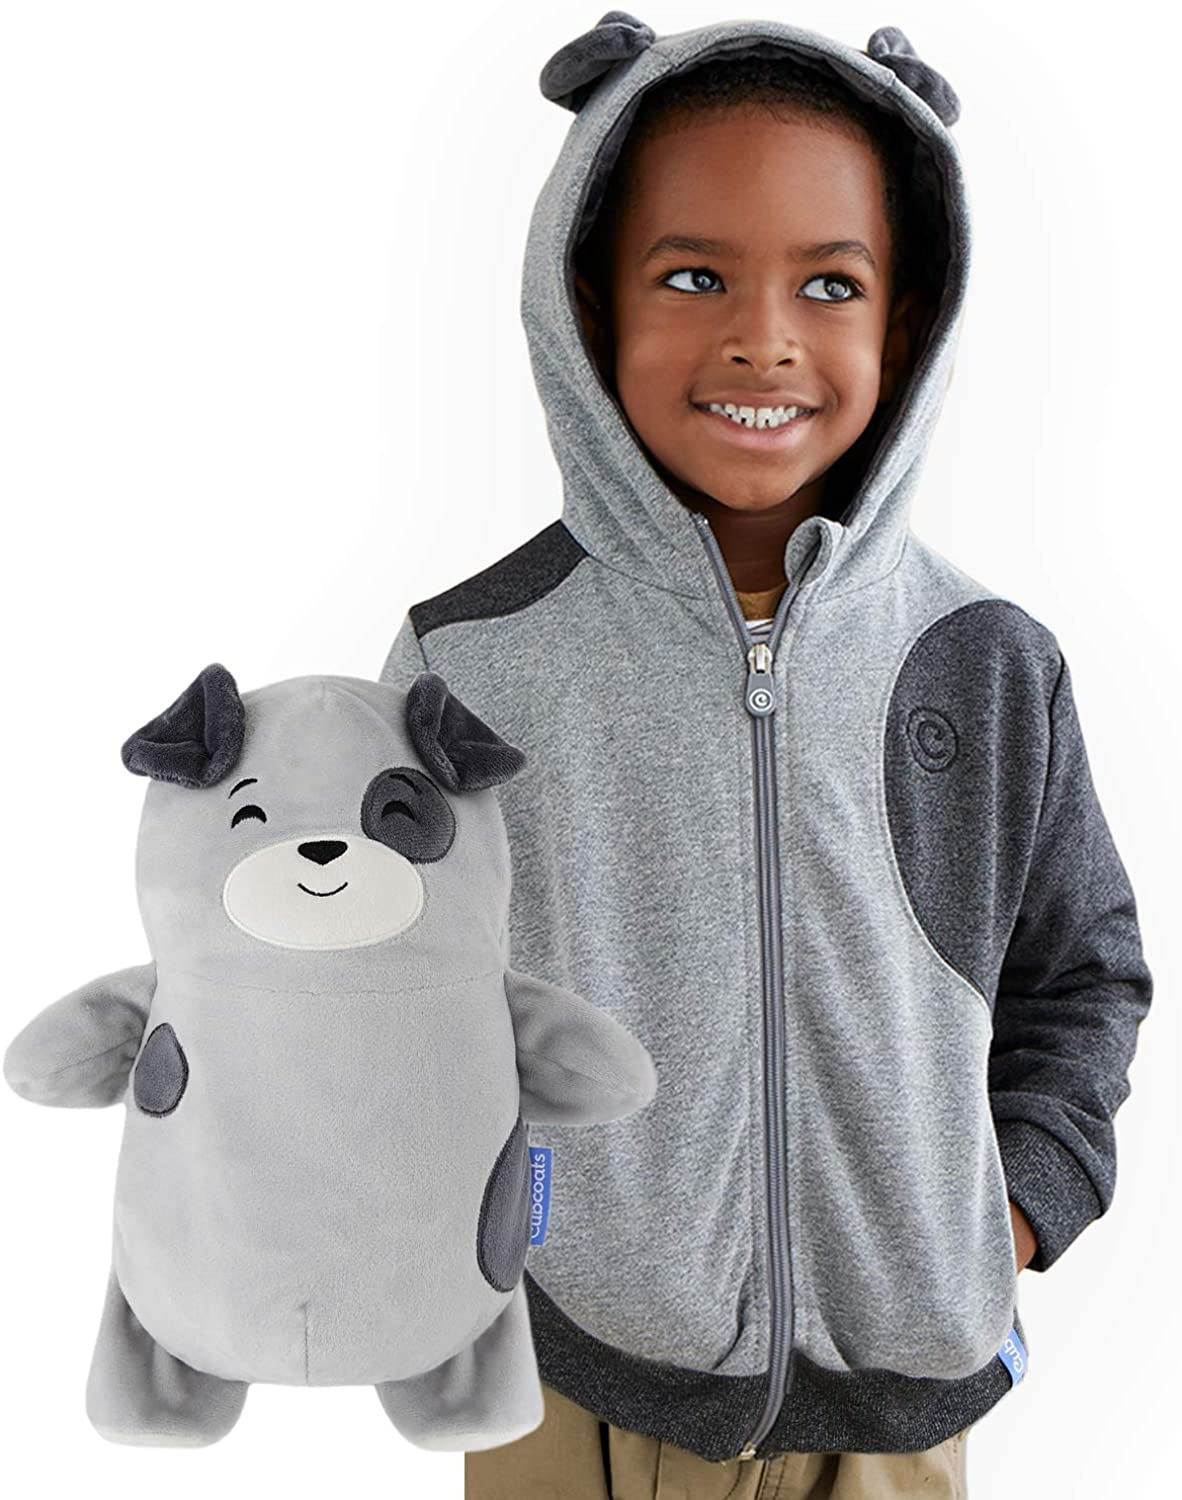 Pimm The Puppy Hoodie and Soft Plushie For Kids